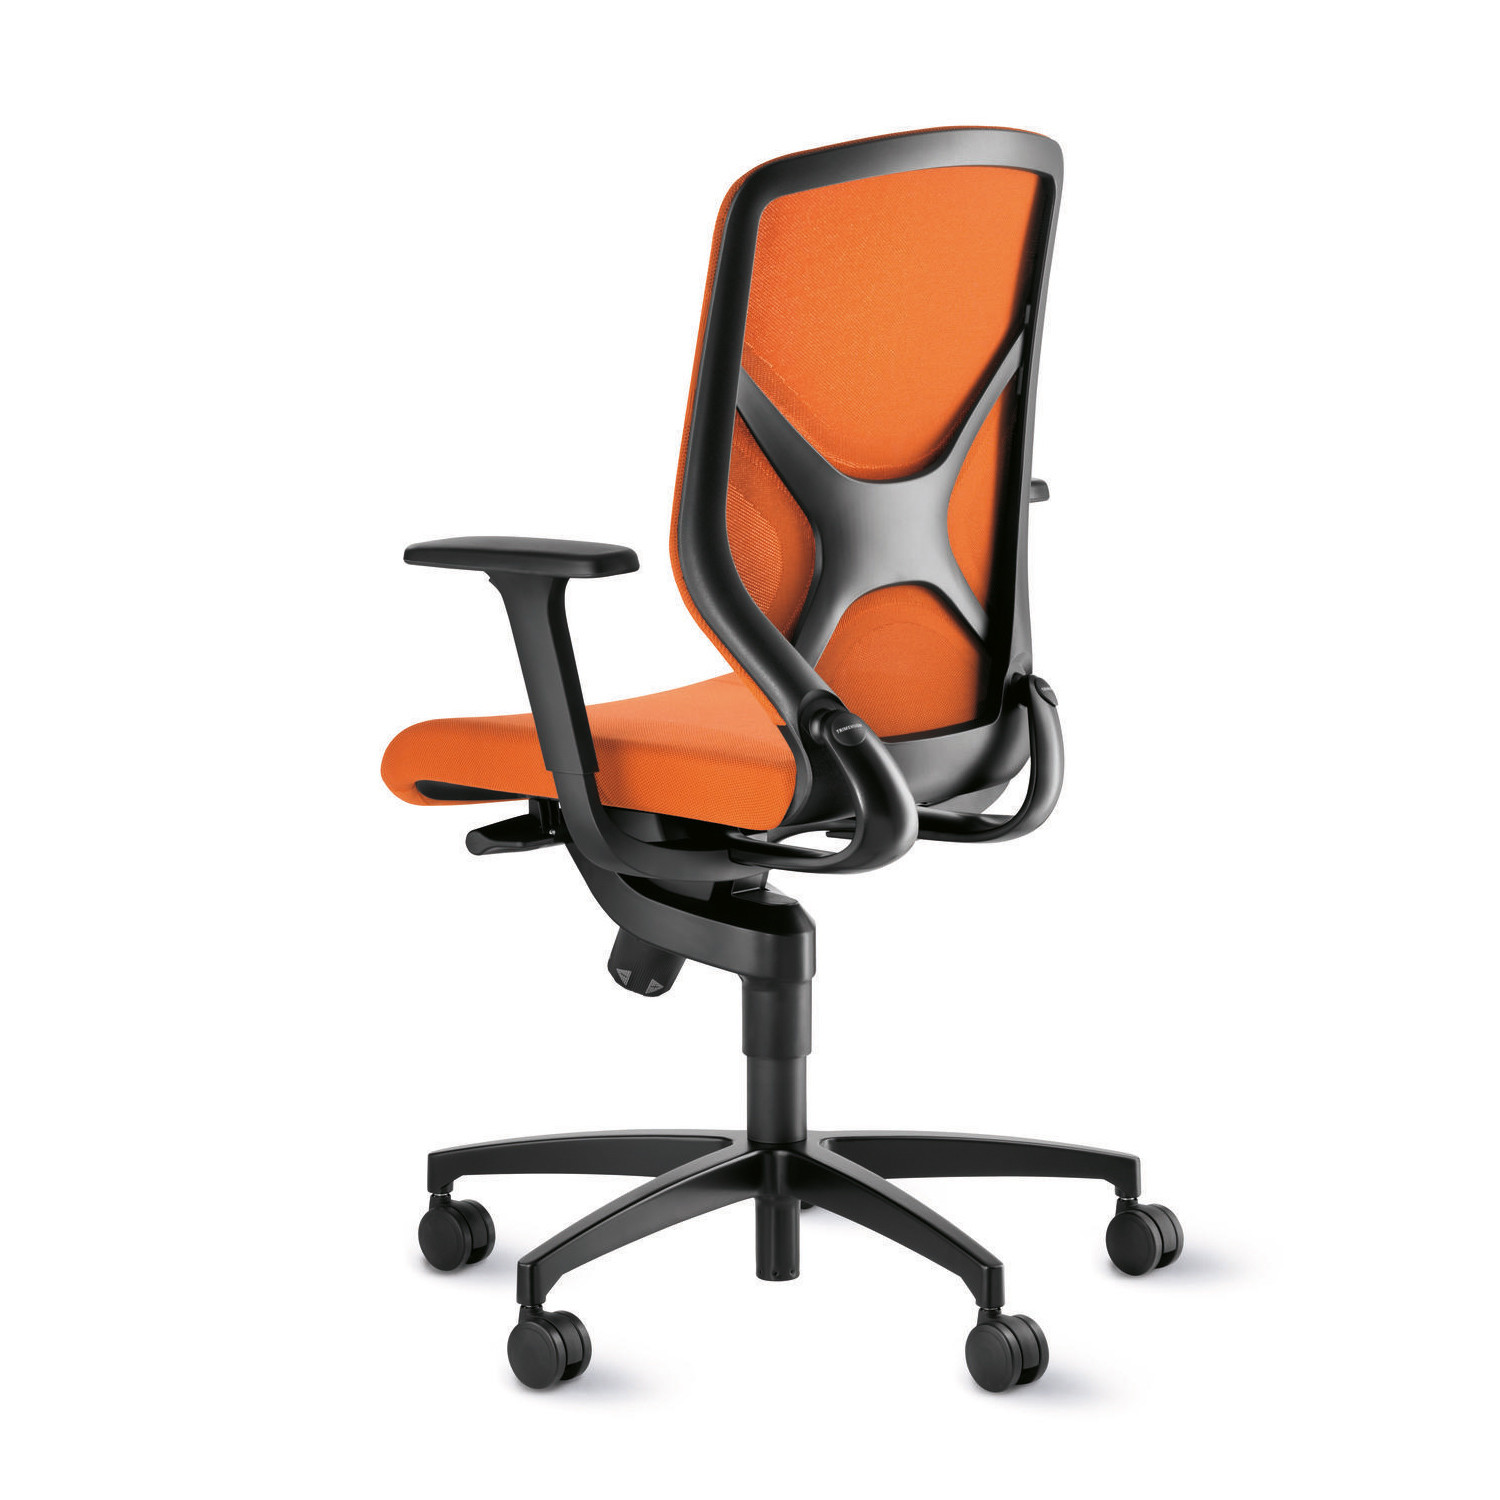 In 3D Office Chair With Trimension ®